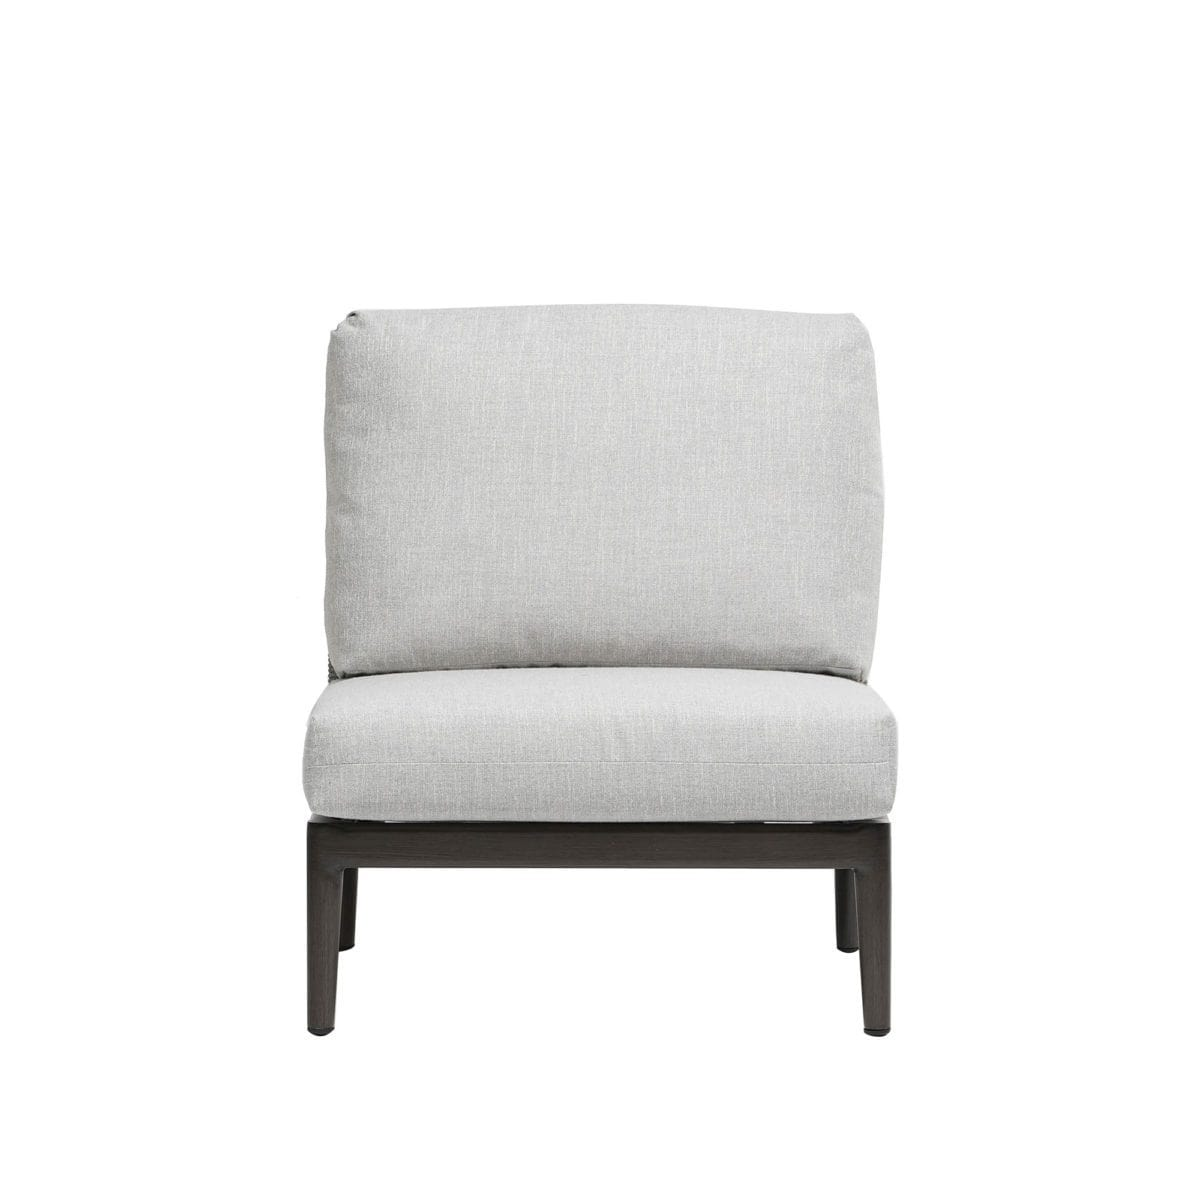 Ratana Sectional Poinciana Chair w/o Arm